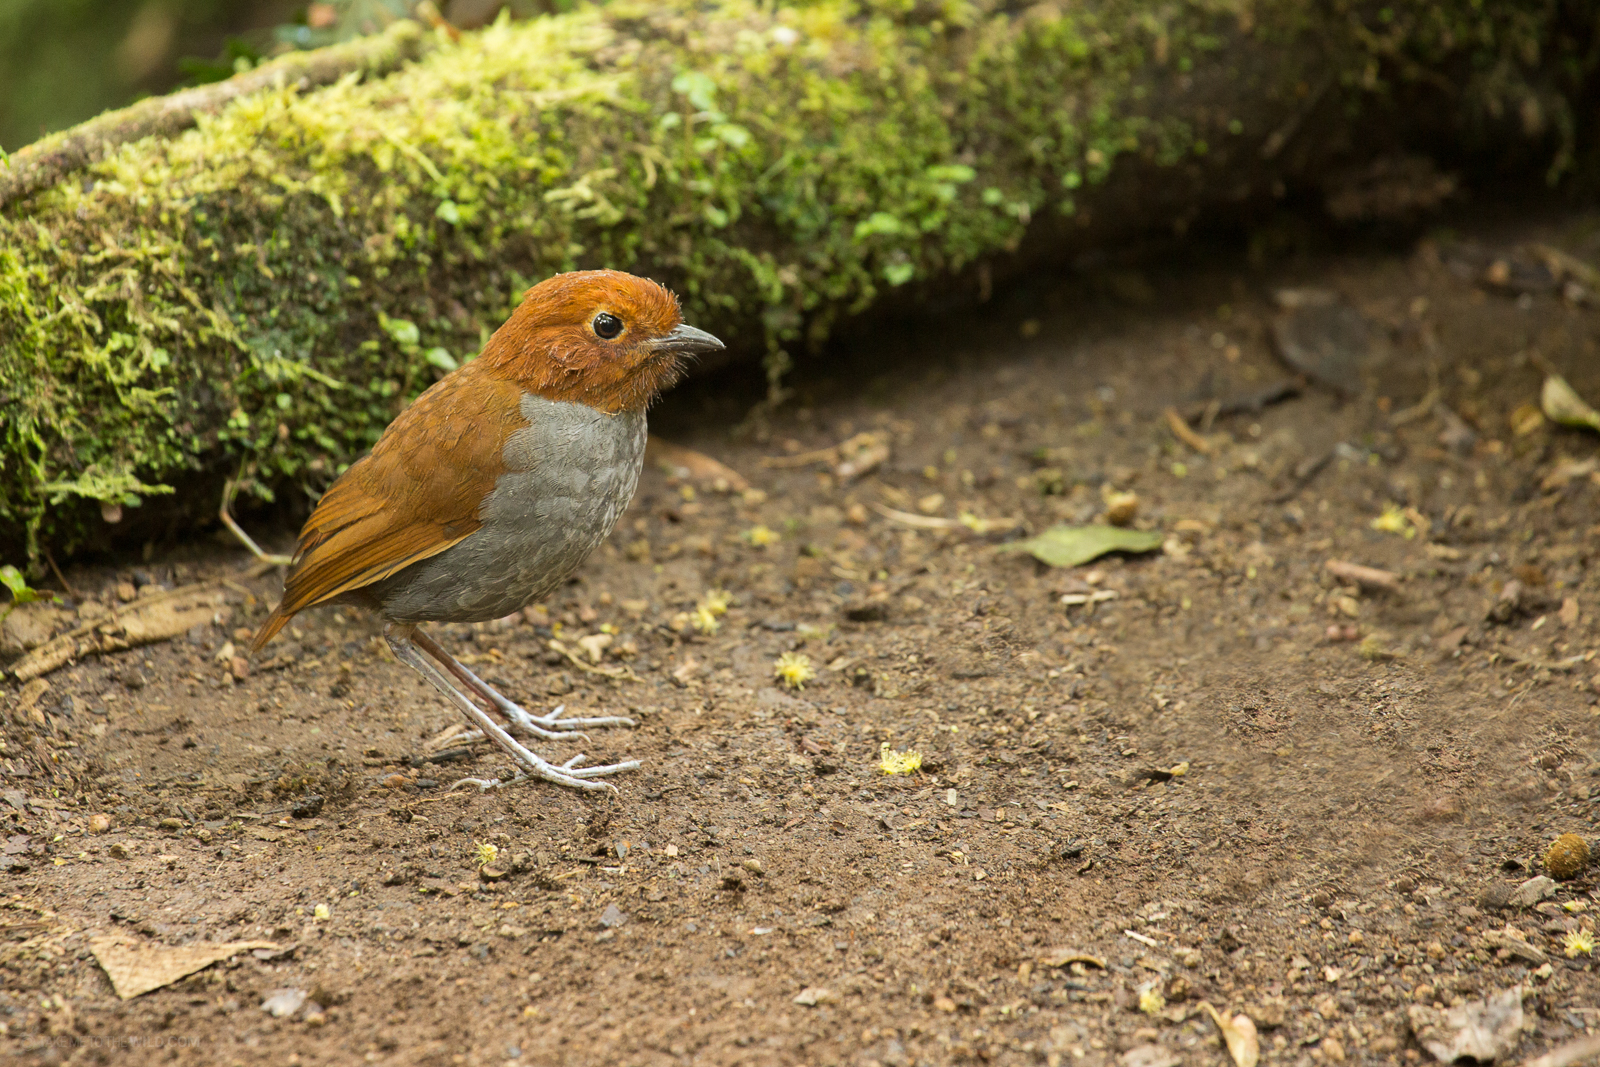 Bicolored Antpitta (Grallaria rufocinerea) perched on the ground at Manizales, Colombia